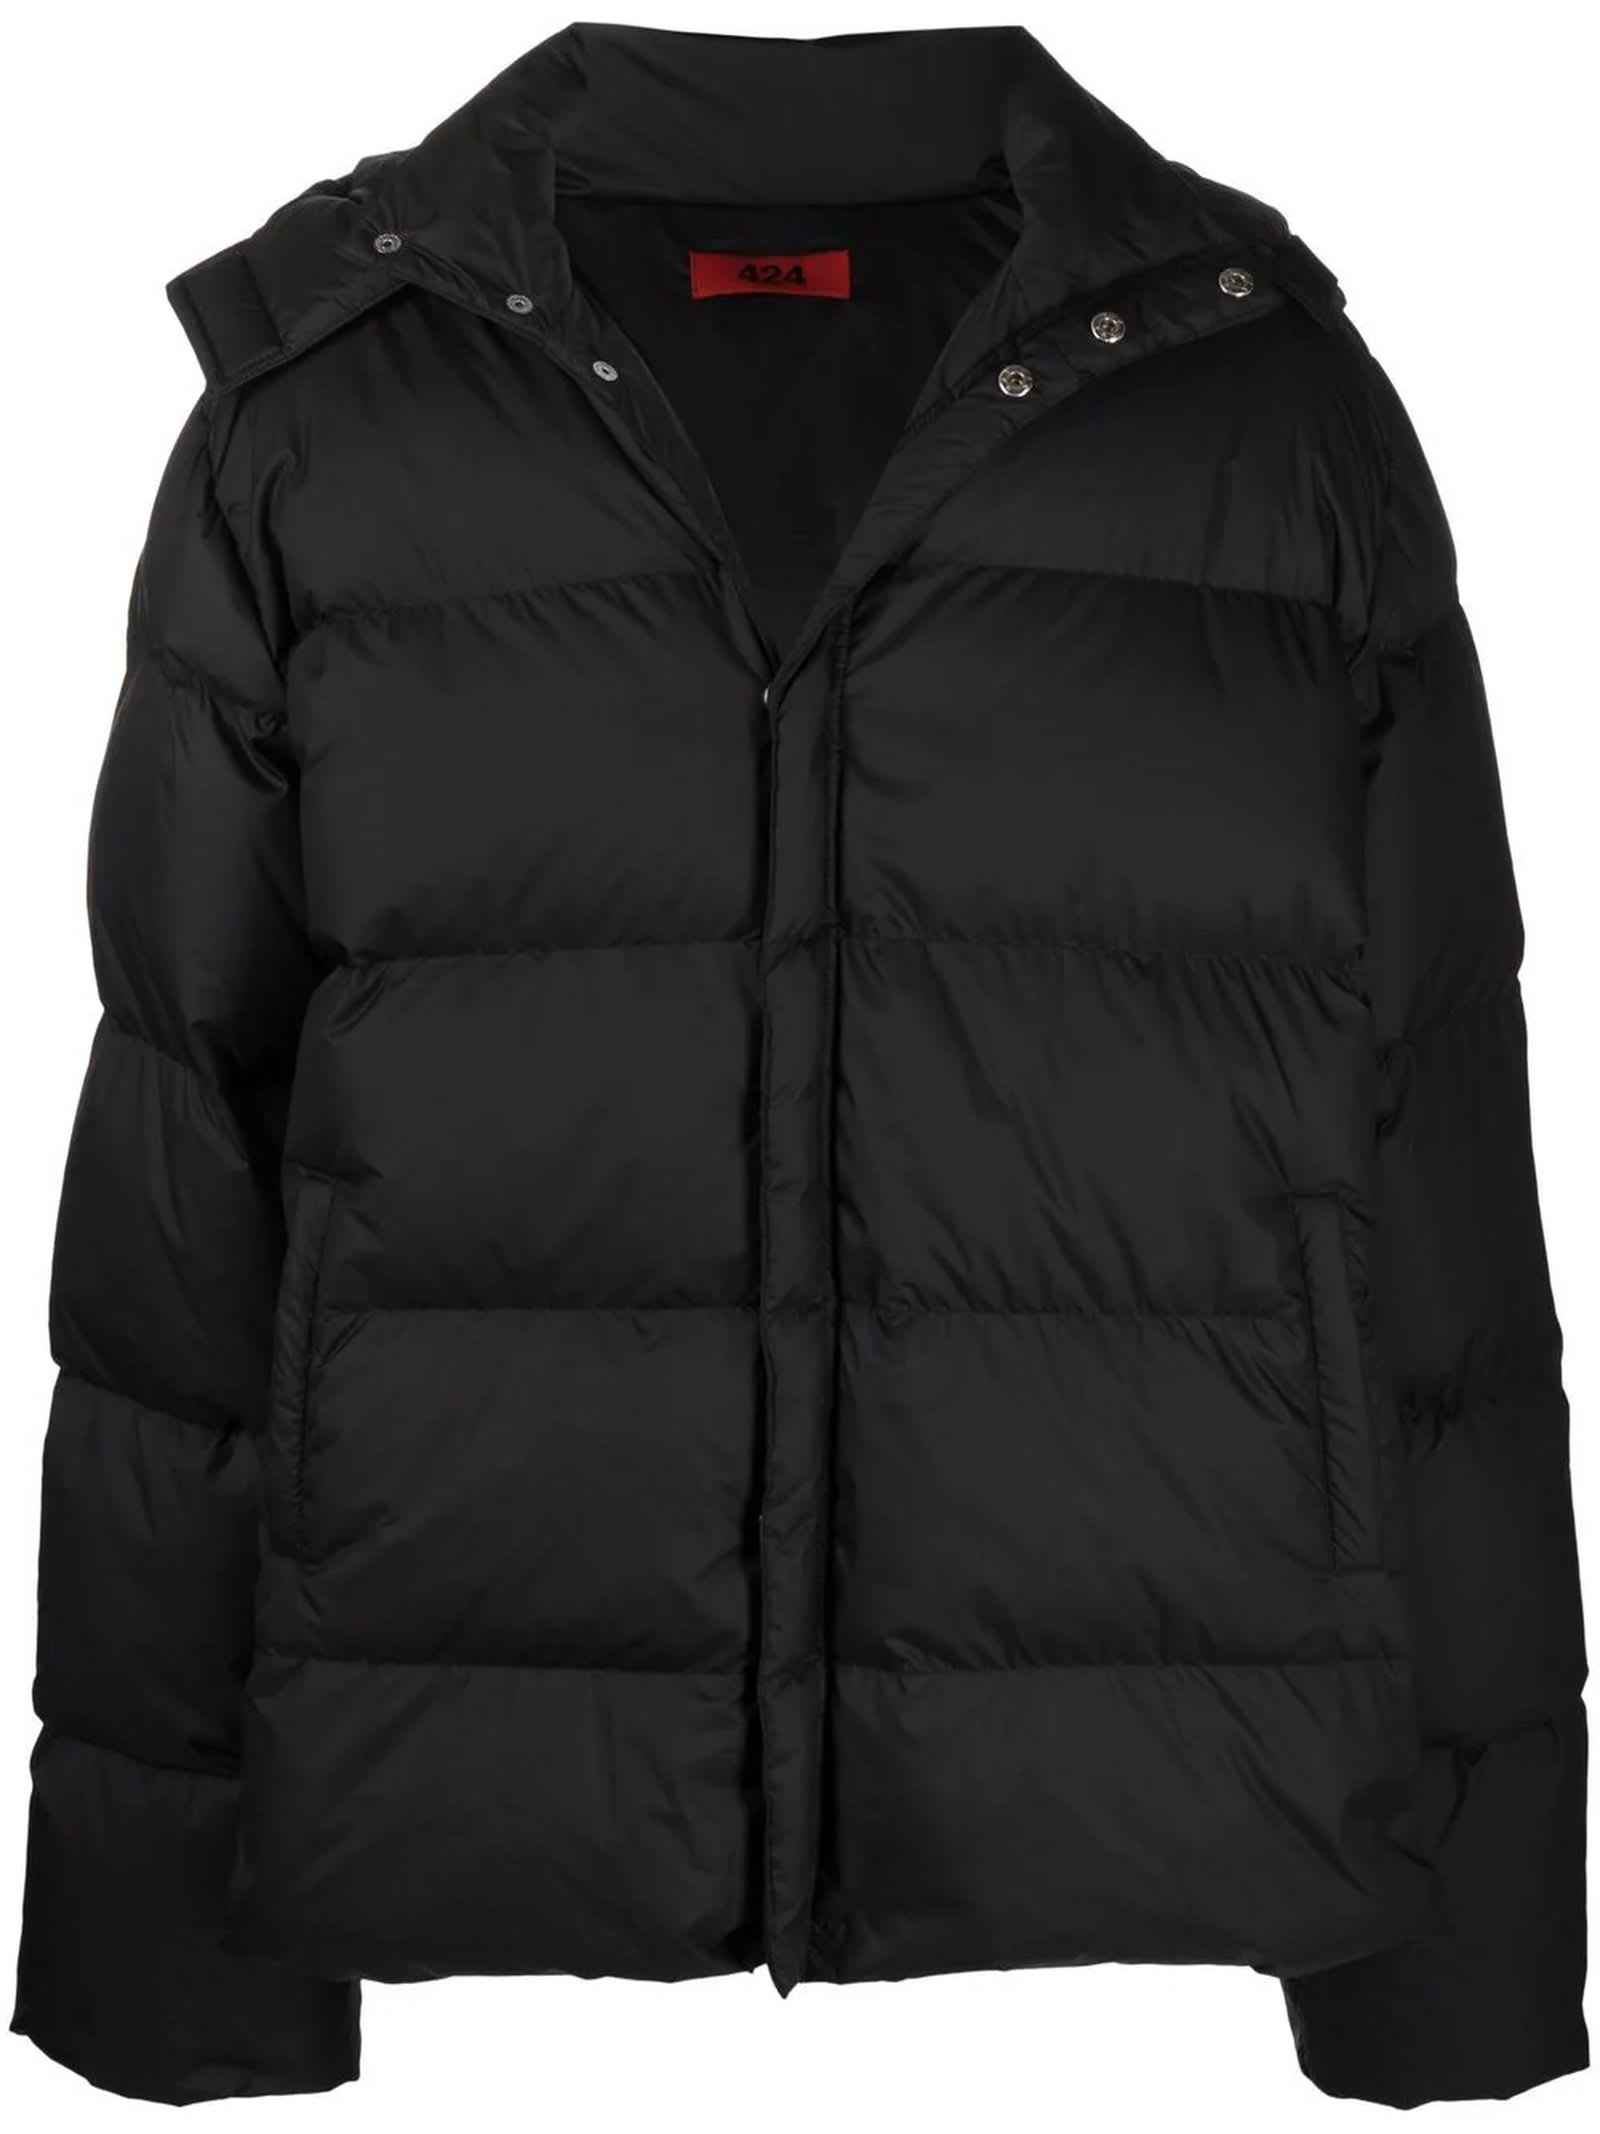 Black Duck Feathers Puffer Jacket